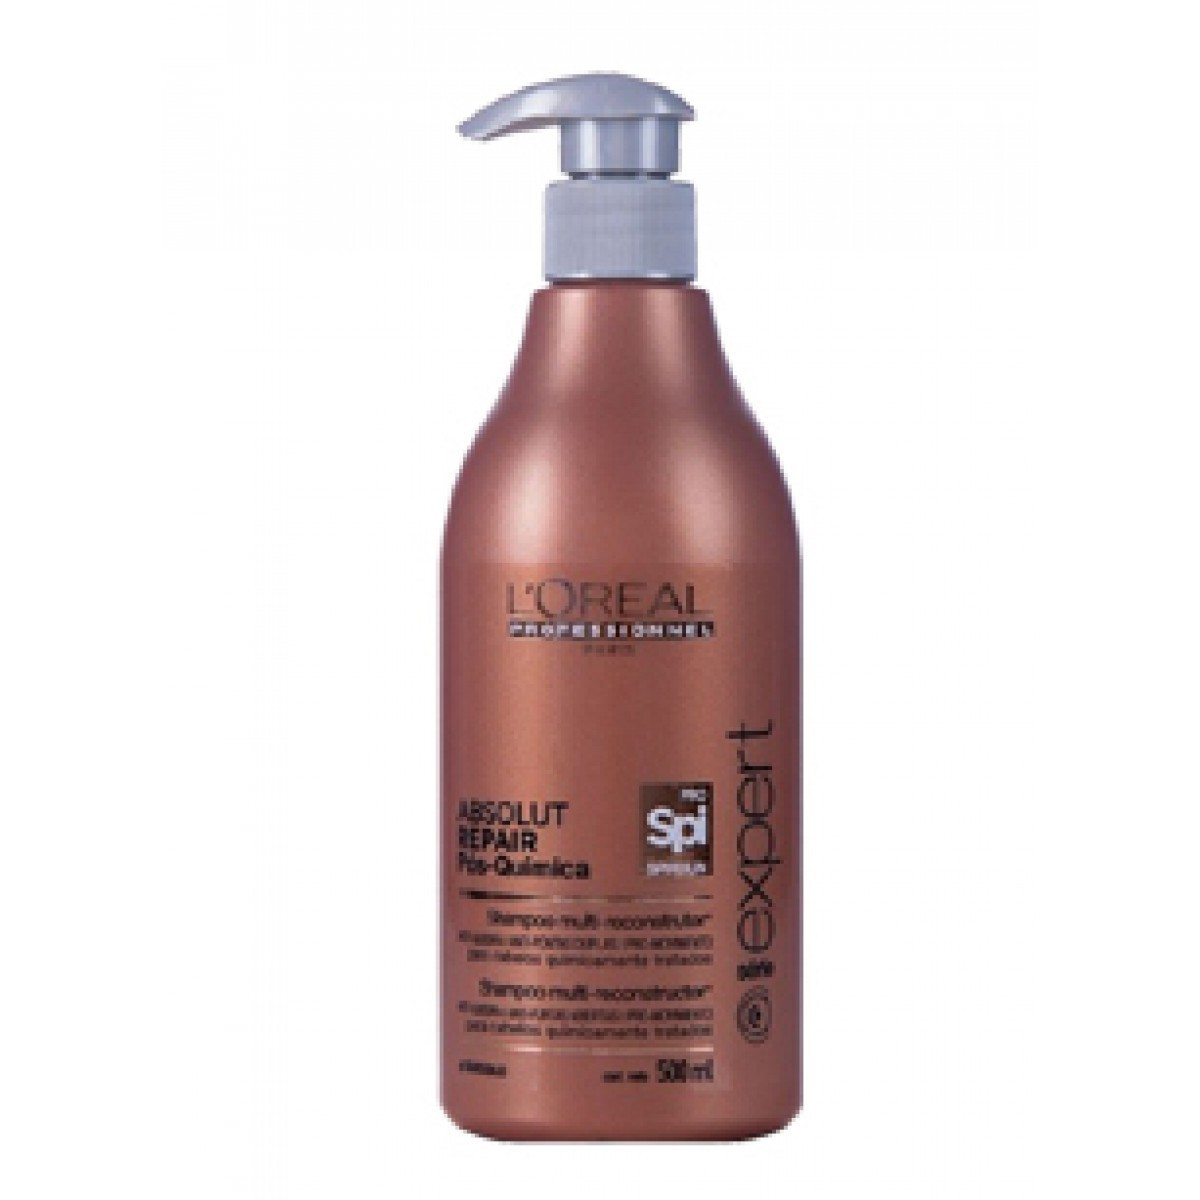 Loreal Professionnel Absolut Repair Pós Química Shampoo 500ml - CA